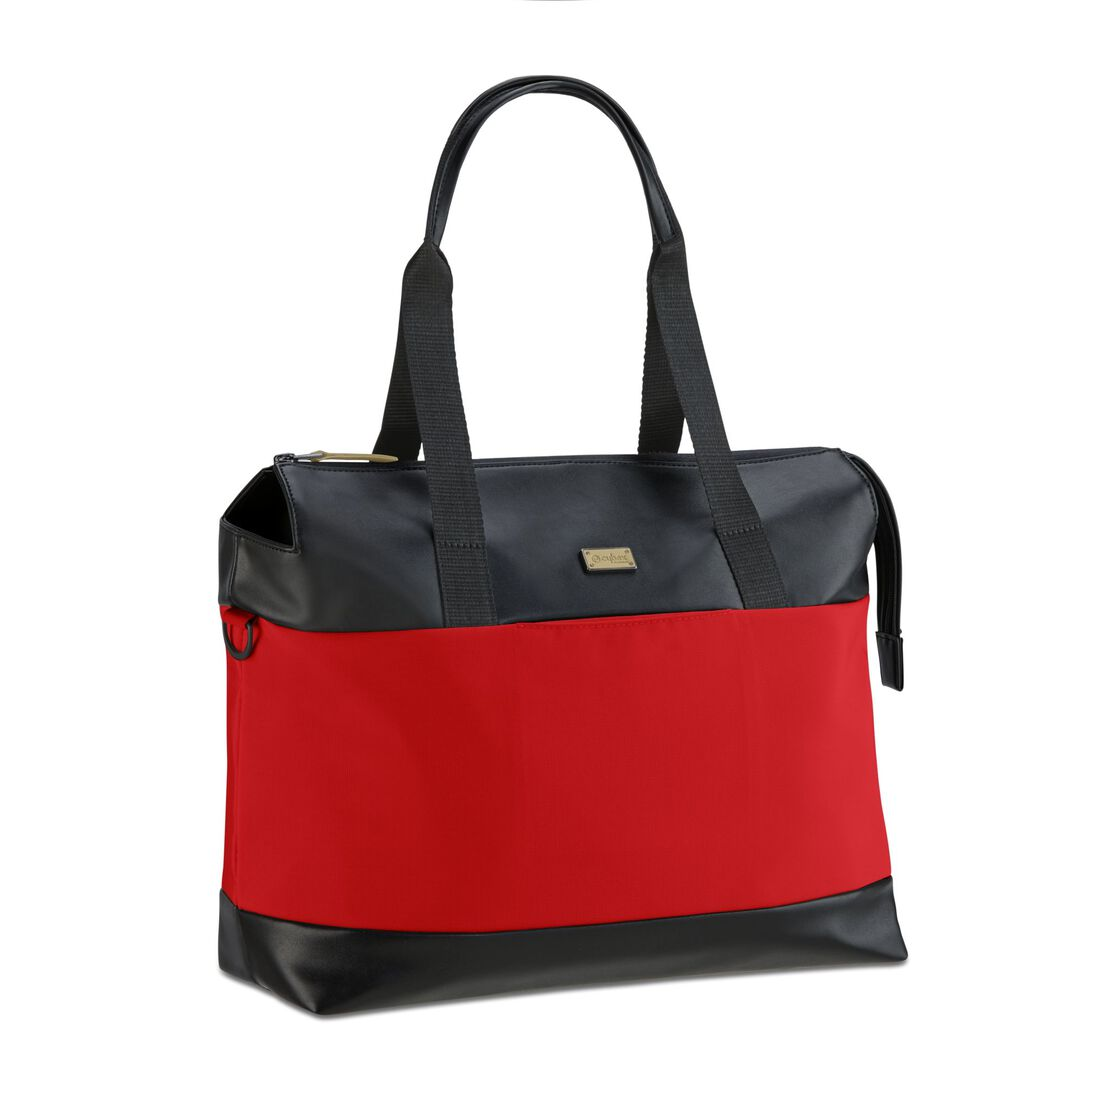 CYBEX Mios Changing Bag - Autumn Gold in Autumn Gold large image number 1